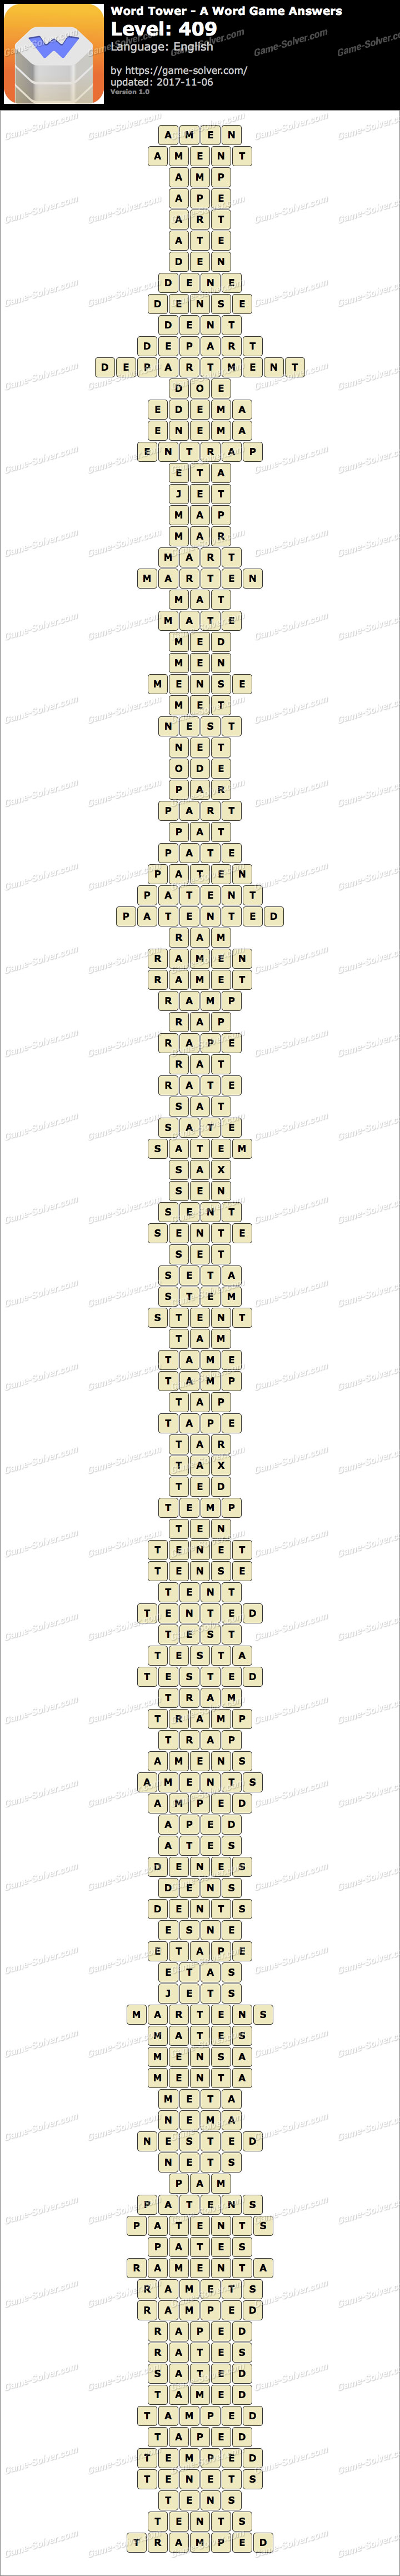 Word Tower Level 409 Answers